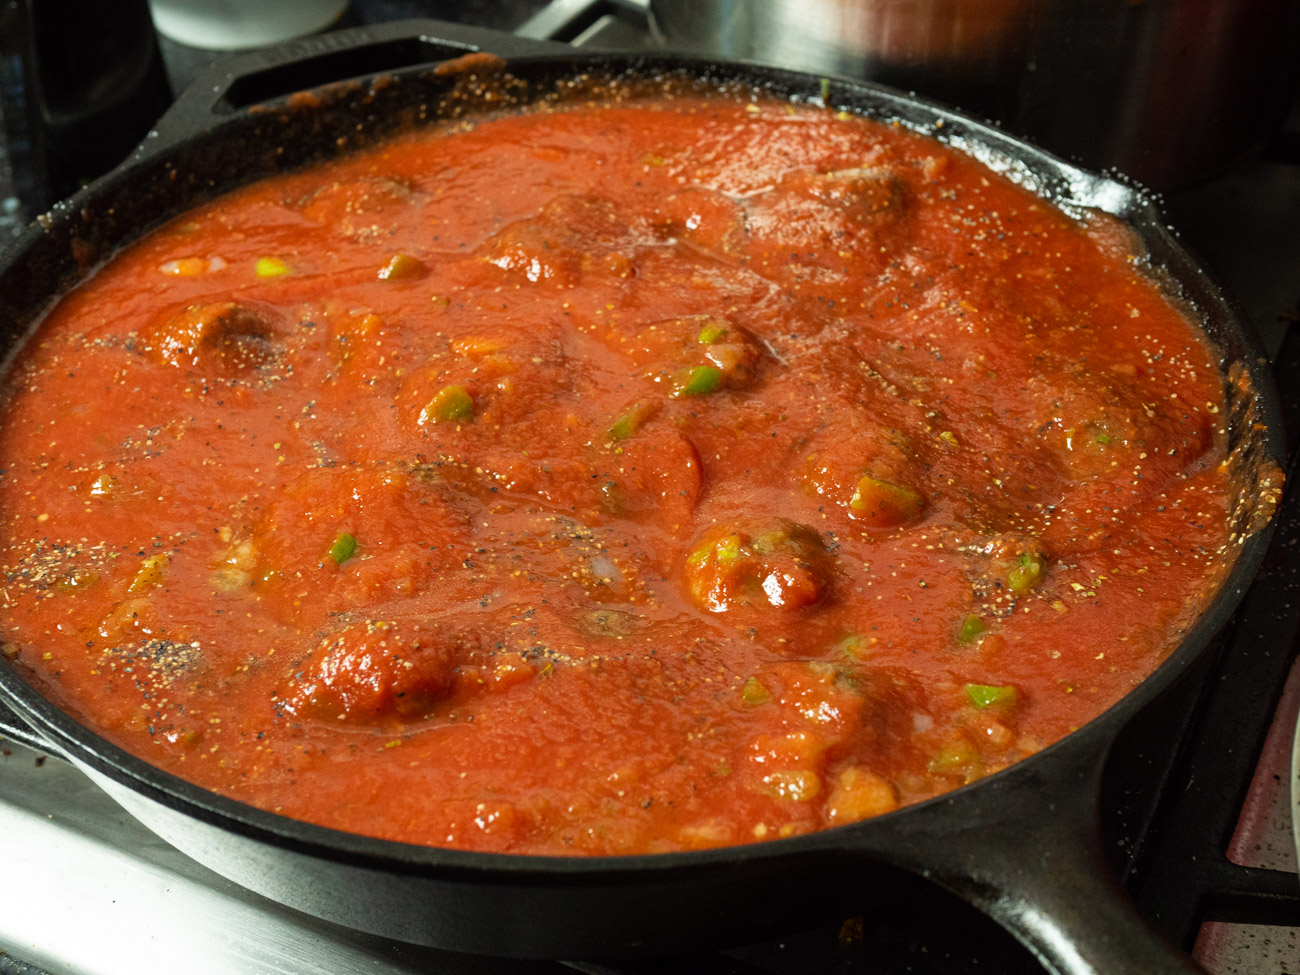 Add Italian seasoning and tomato sauce and reduce heat to medium-low heat. Gently place meatballs in sauce and fold to coat with sauce, but do not stir or break up meatballs.